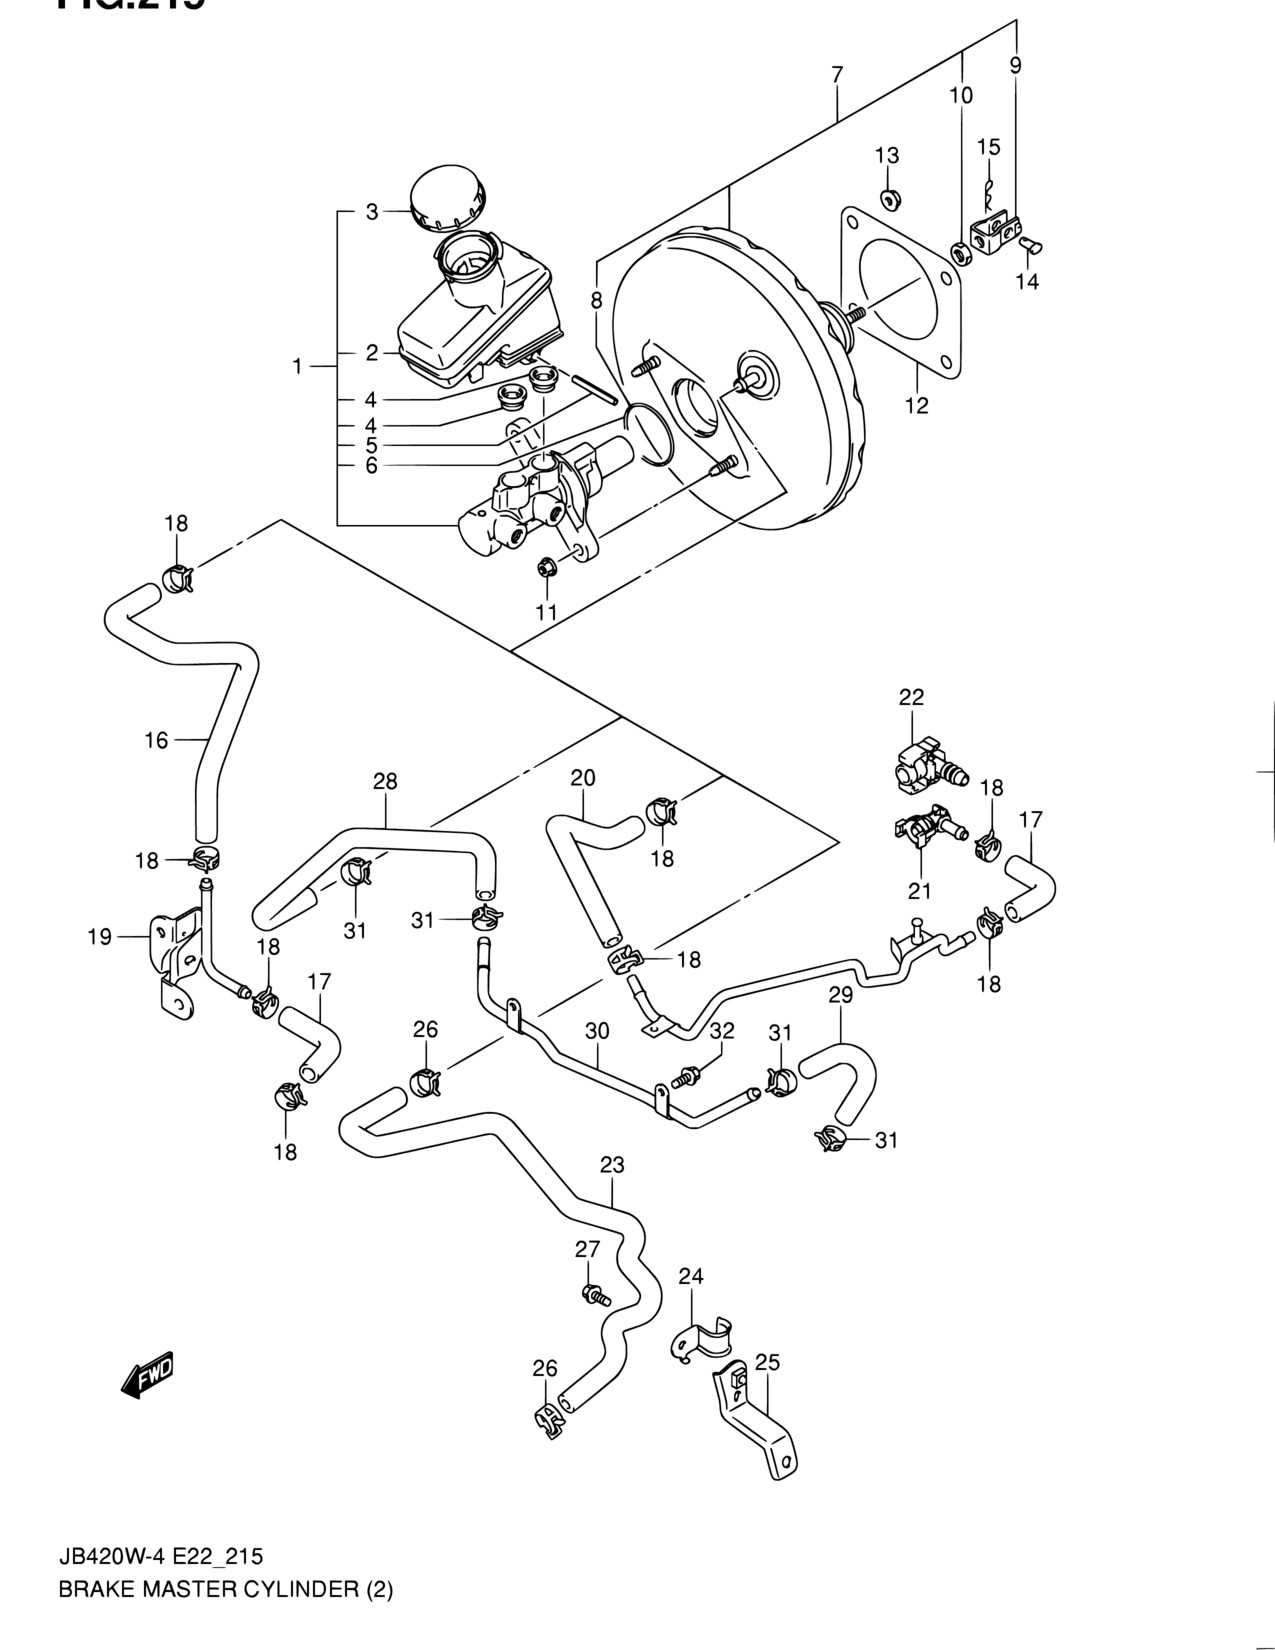 Brake Booster Parts Diagram Hatco Glo Ray Wiring Electrical Middle East Grand Vitara Jb419wd 5 215 Master Of